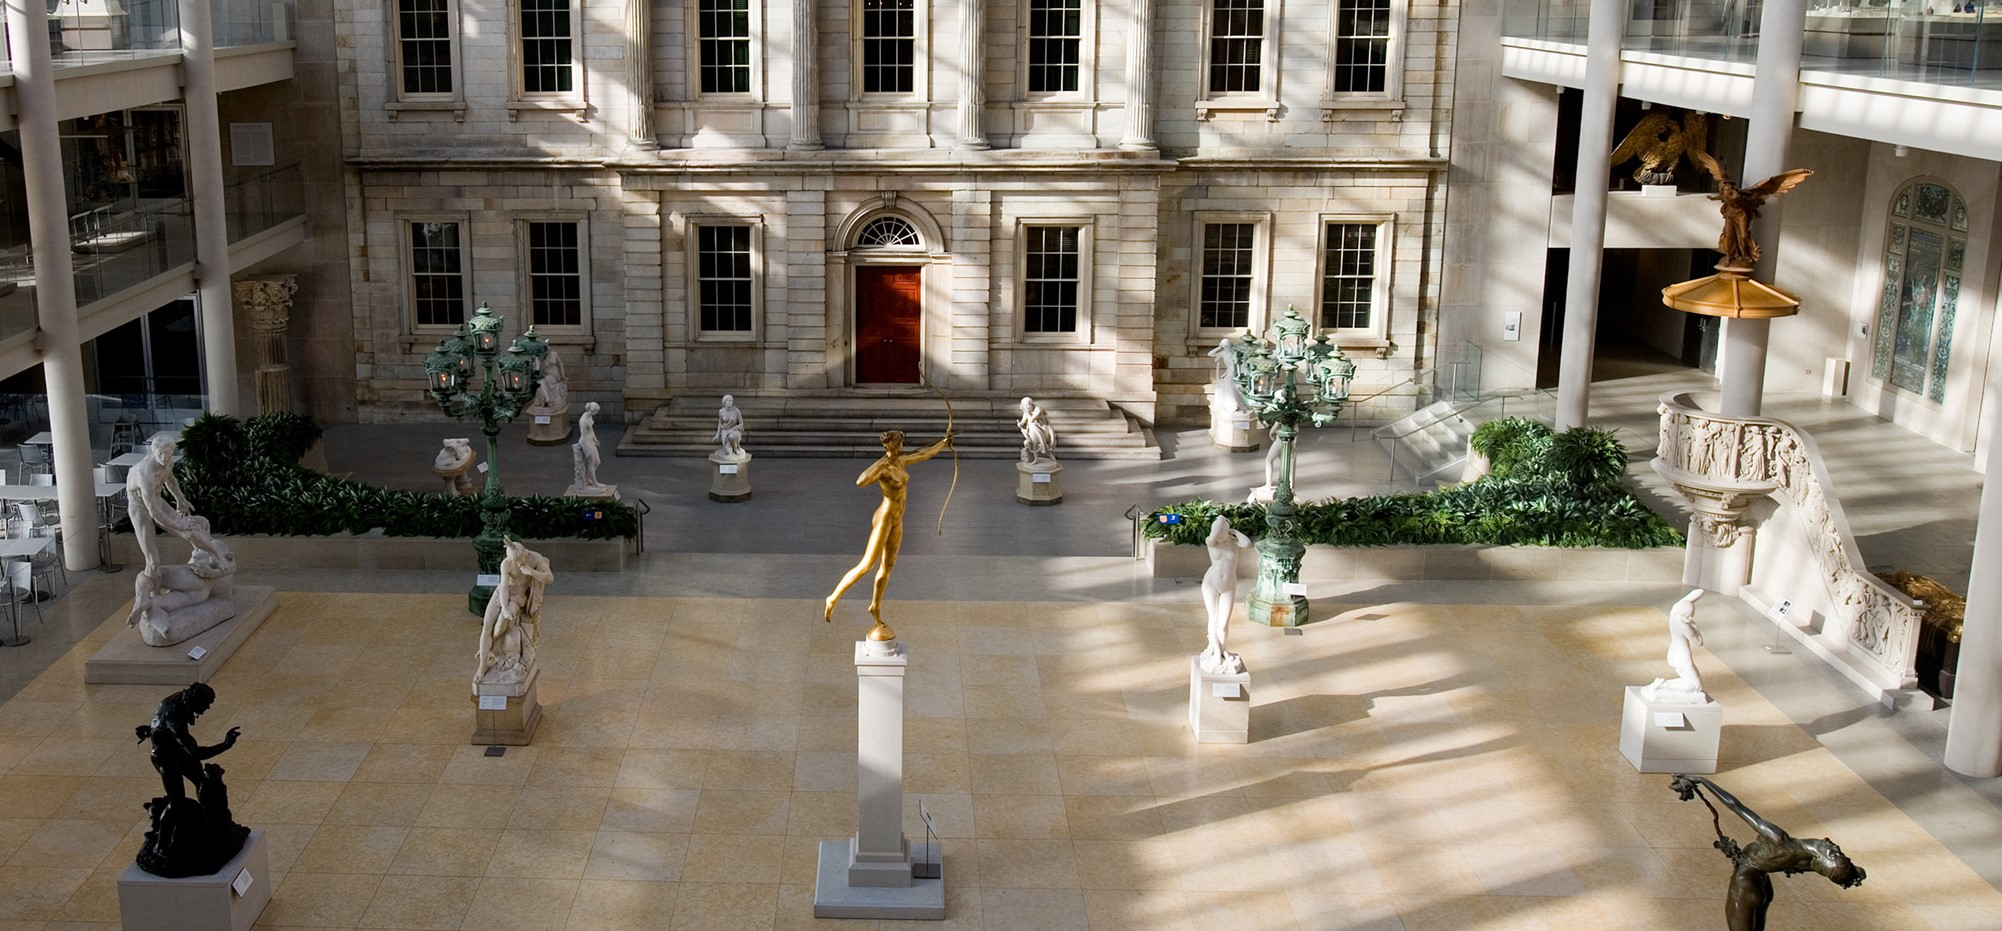 The sculpture court in front of the American Wing of the Metropolitan Museum of Art